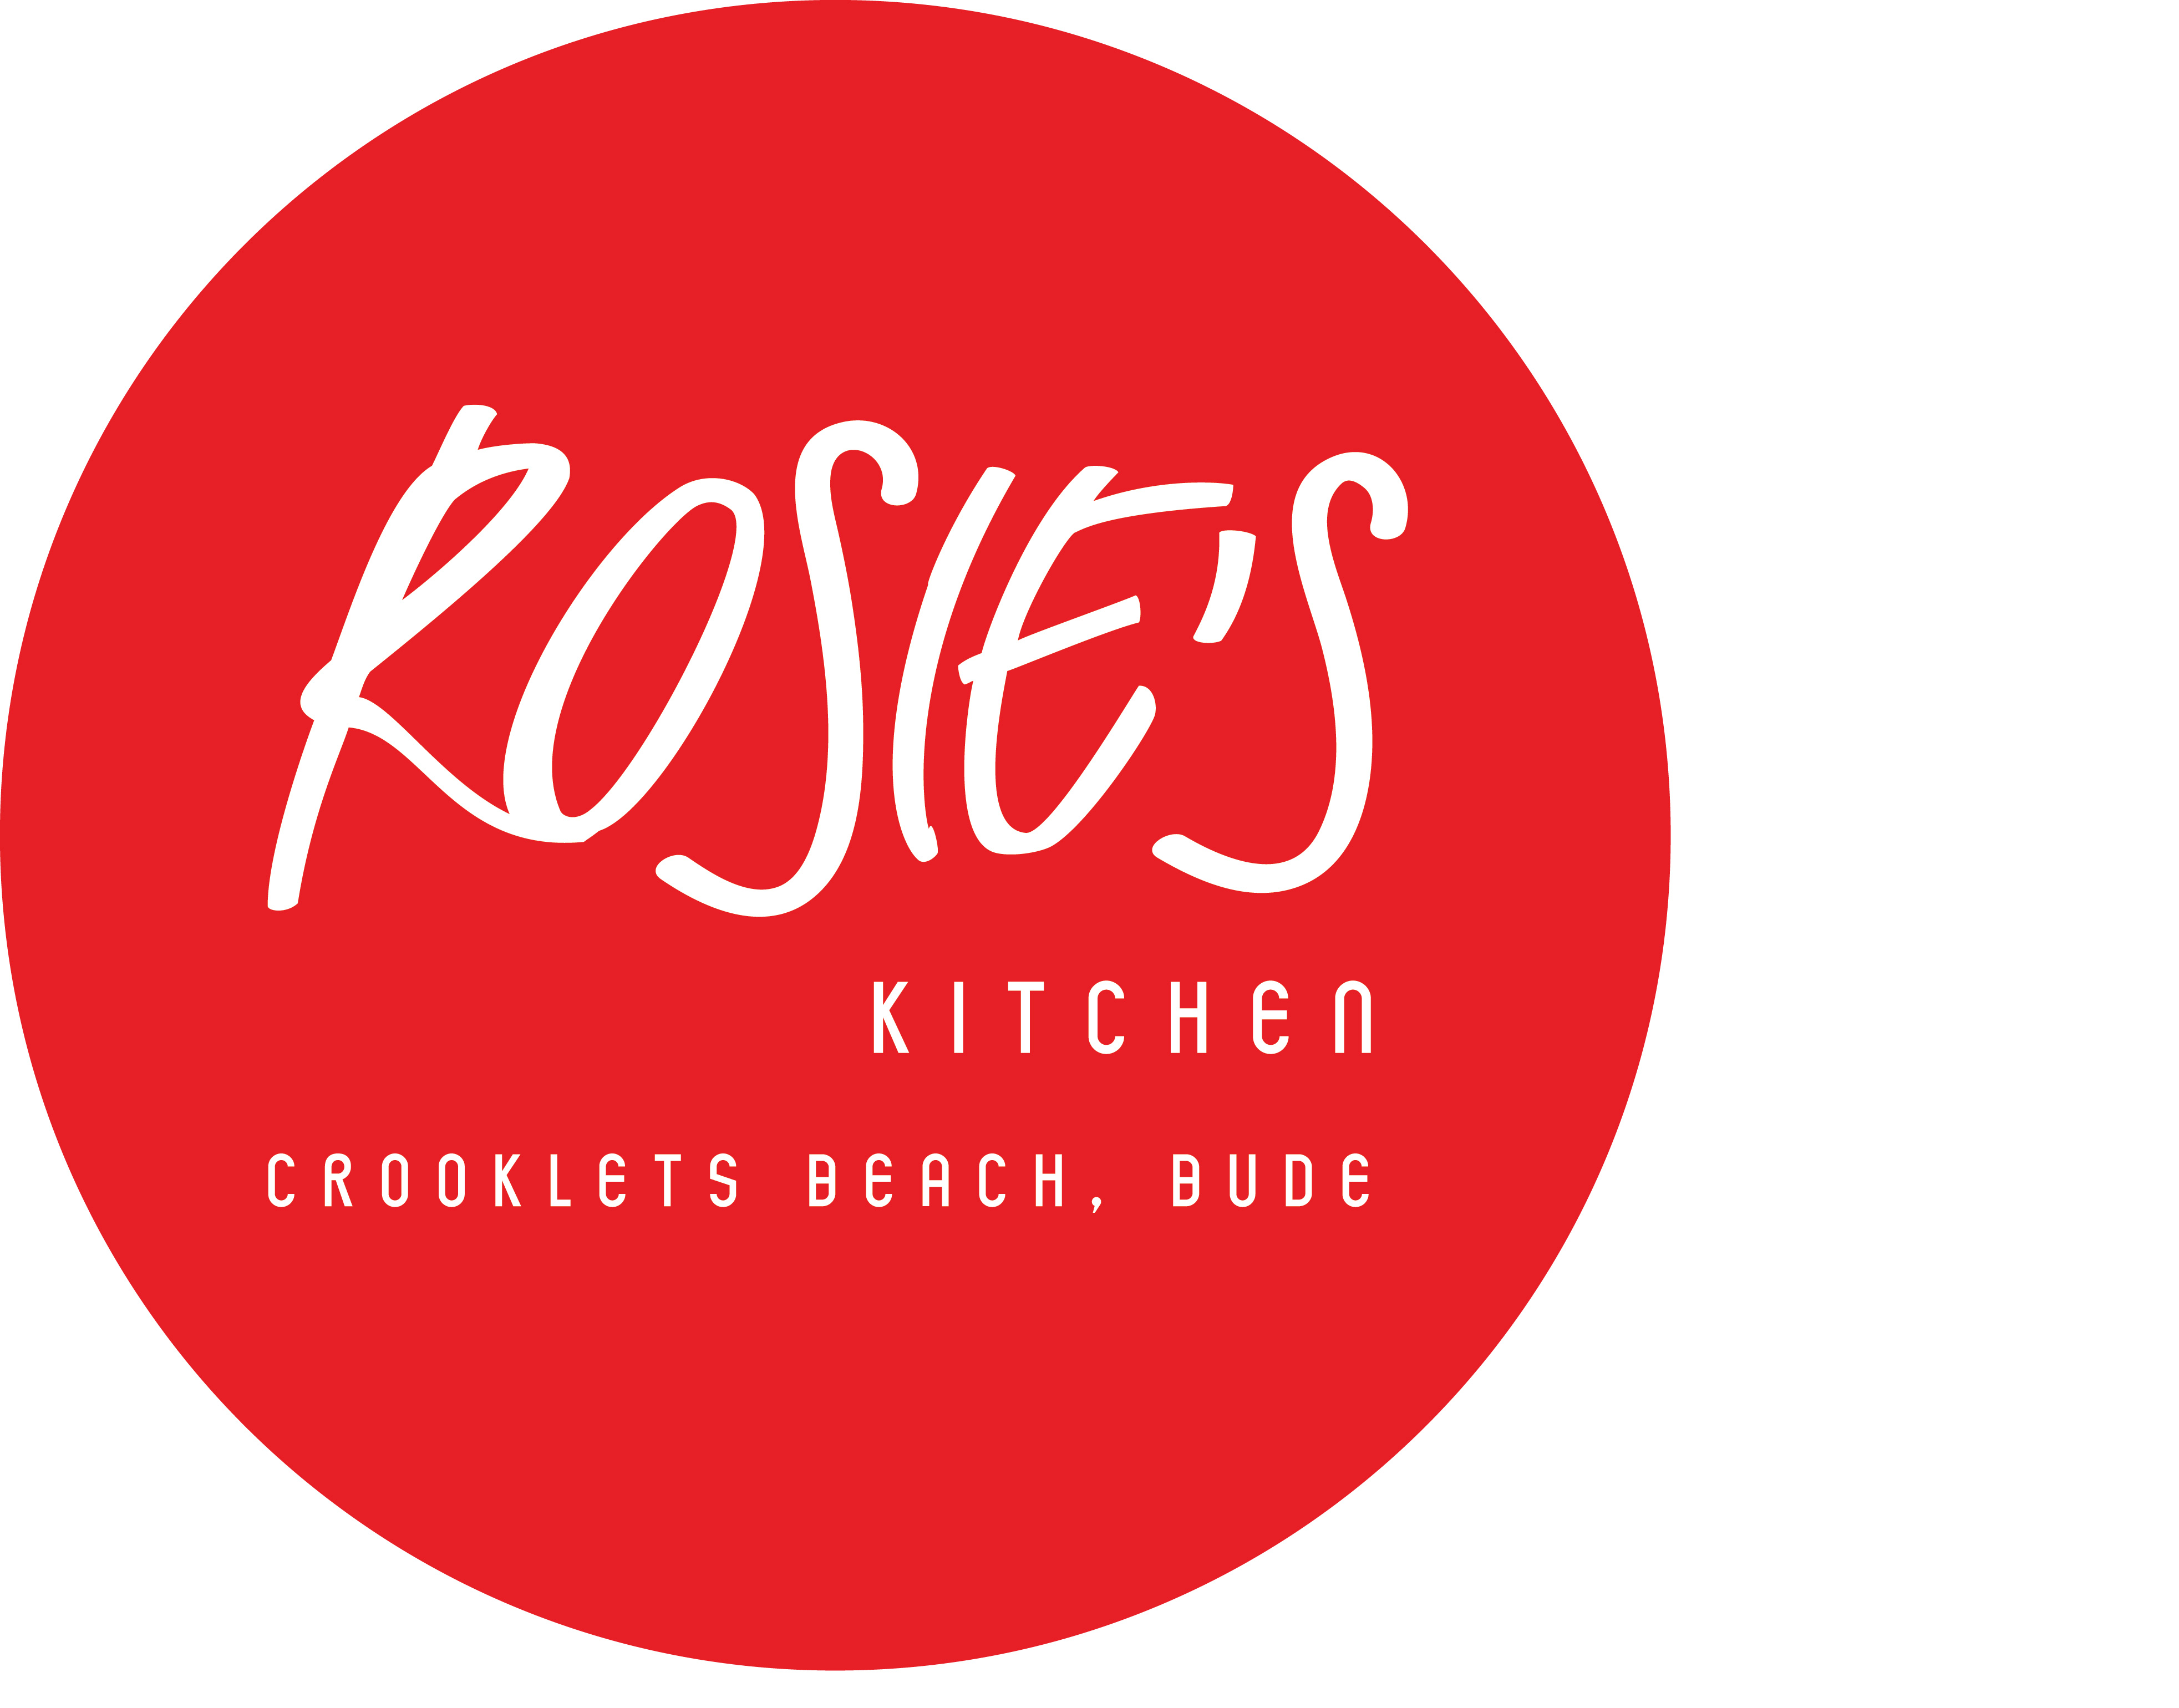 Rosies Kitchen